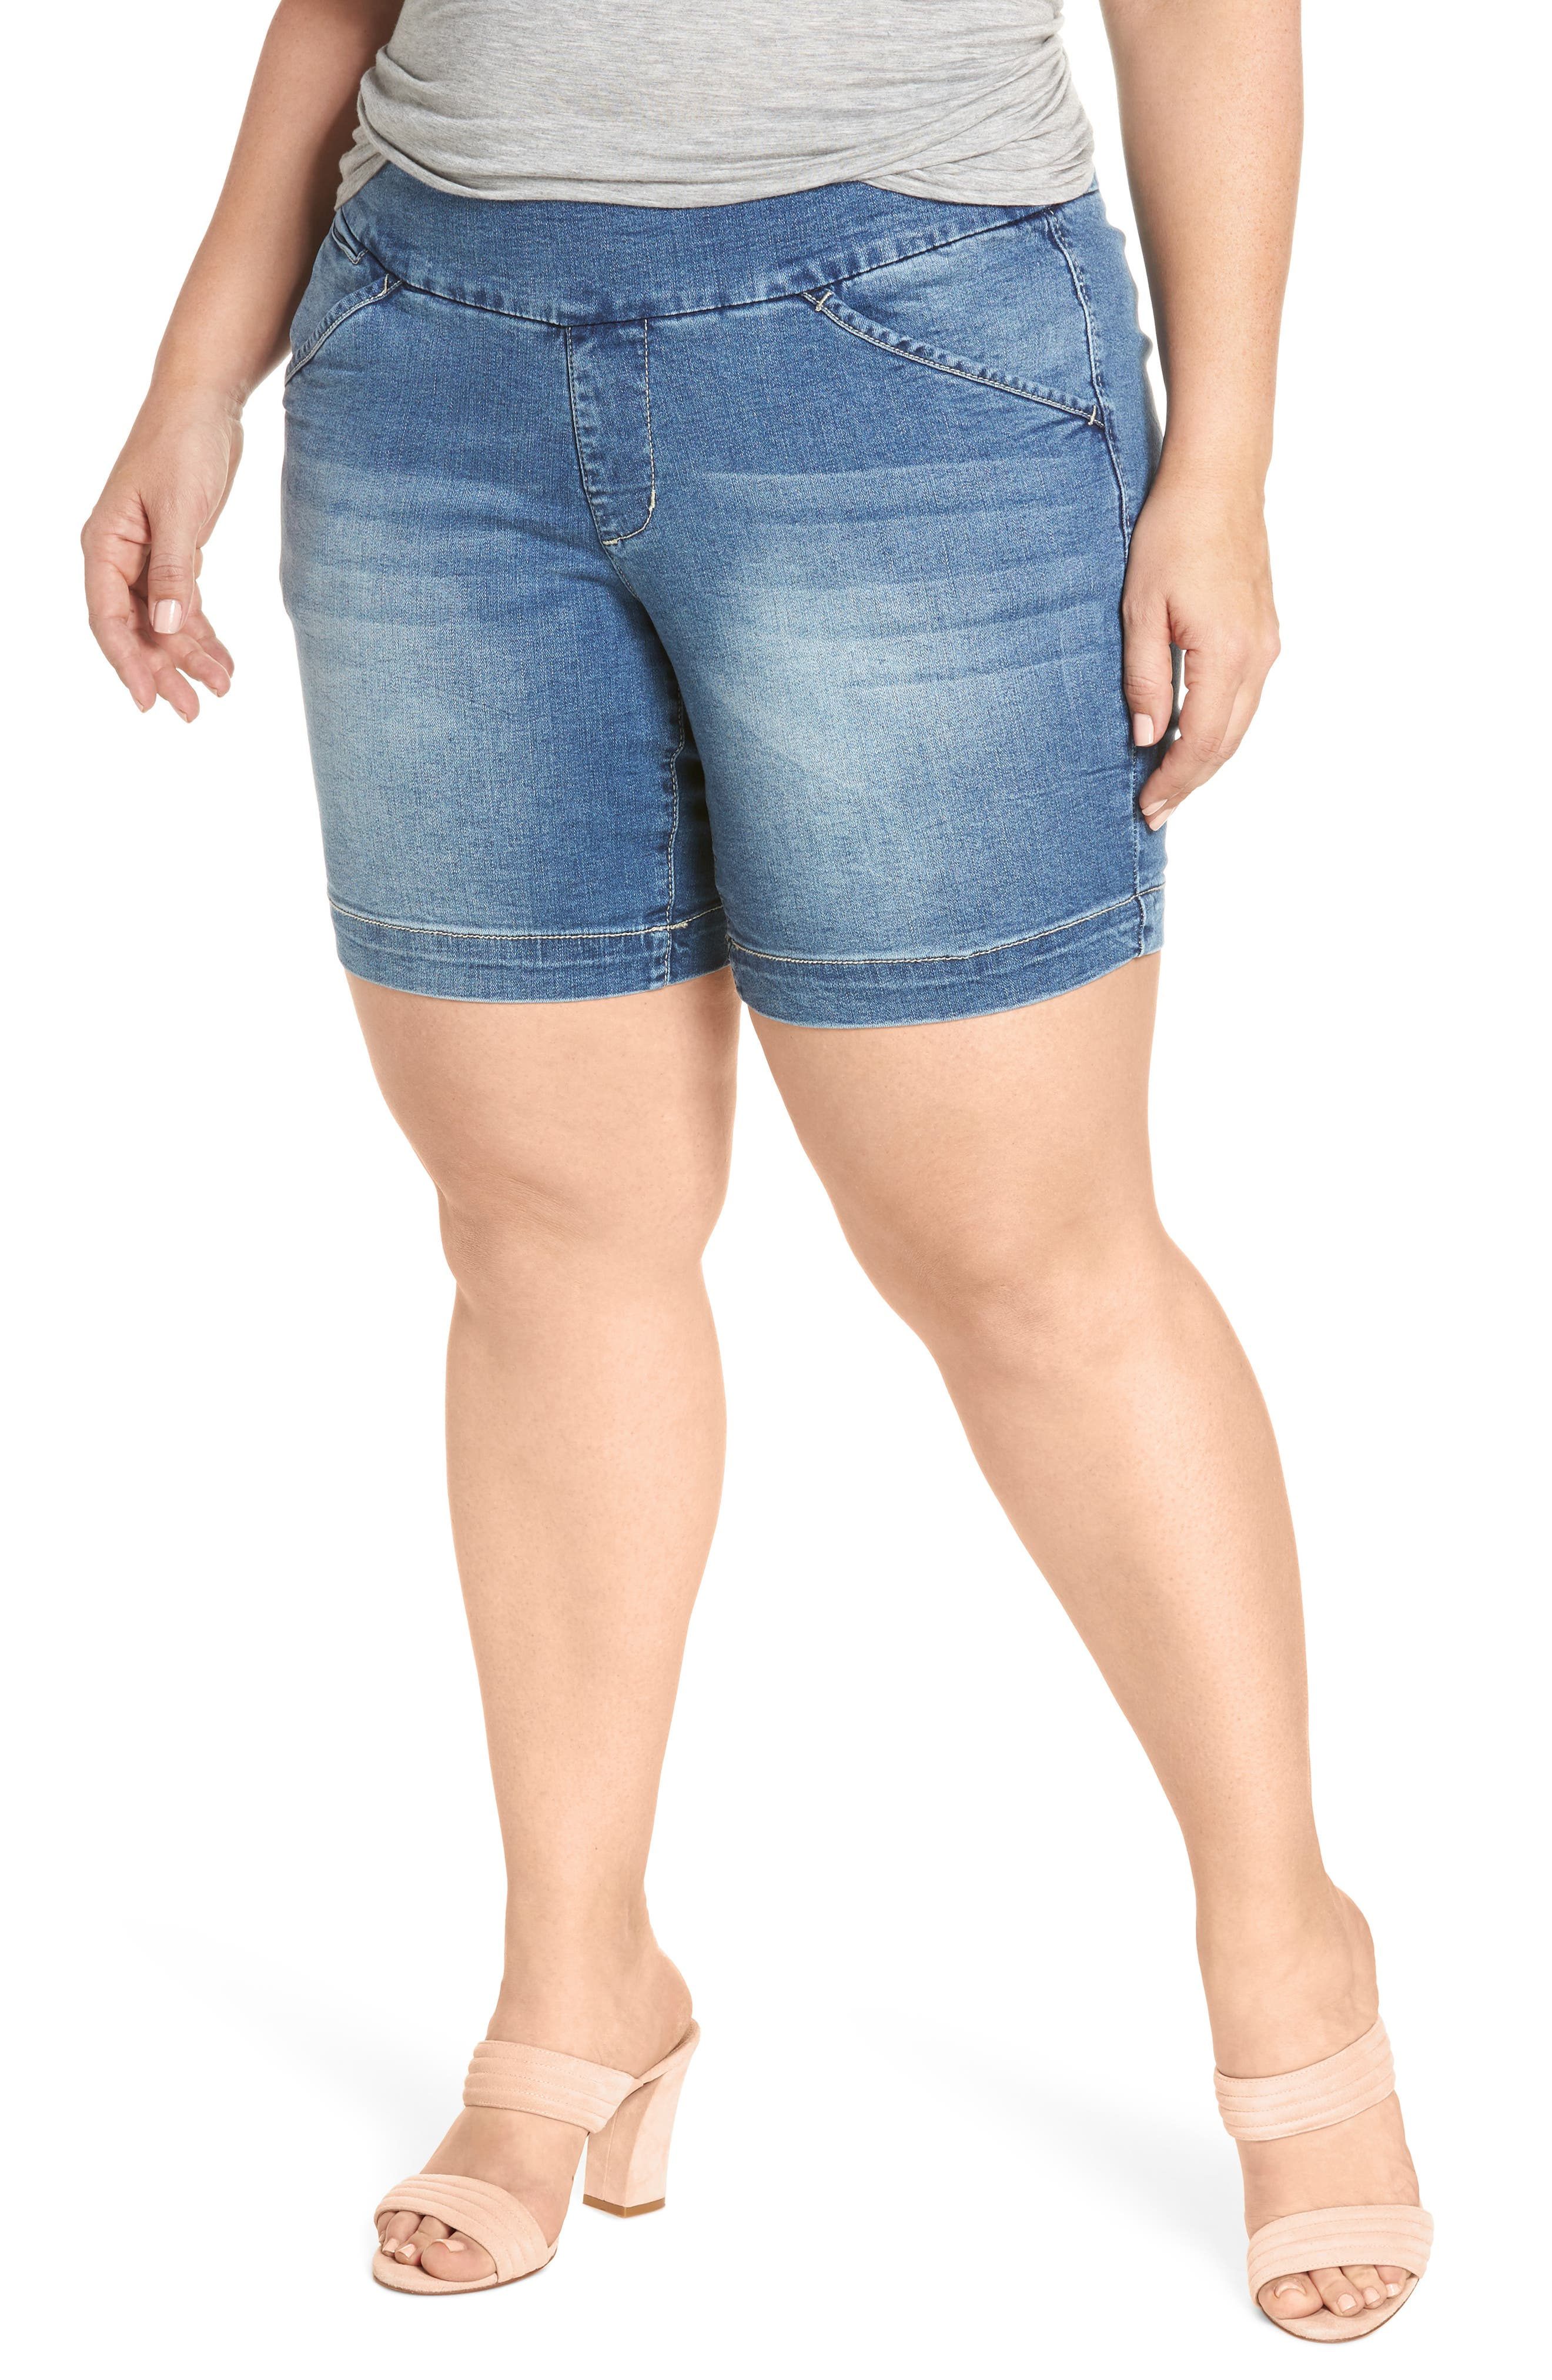 JAG JEANS Ainsley Pull-On Stretch Denim Shorts, Main, color, 420